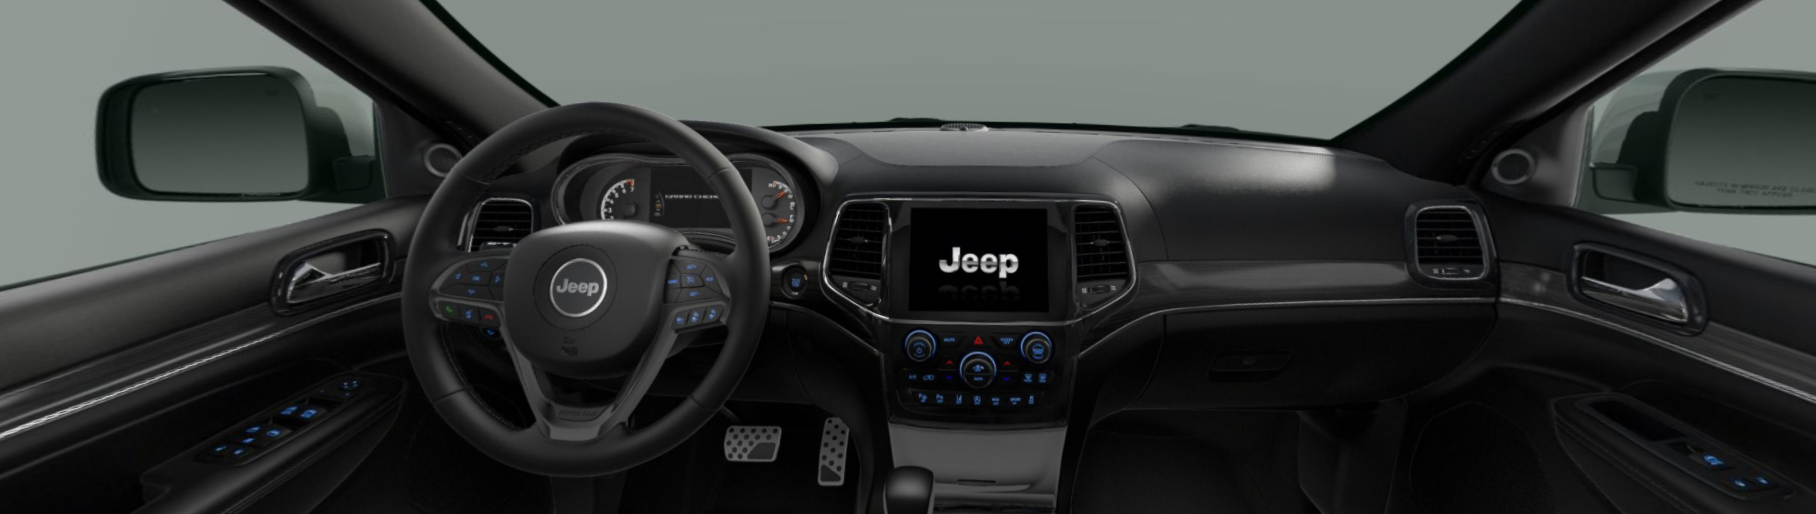 2020 Jeep Grand Cherokee High Altitude Front View Interior Dash Picture